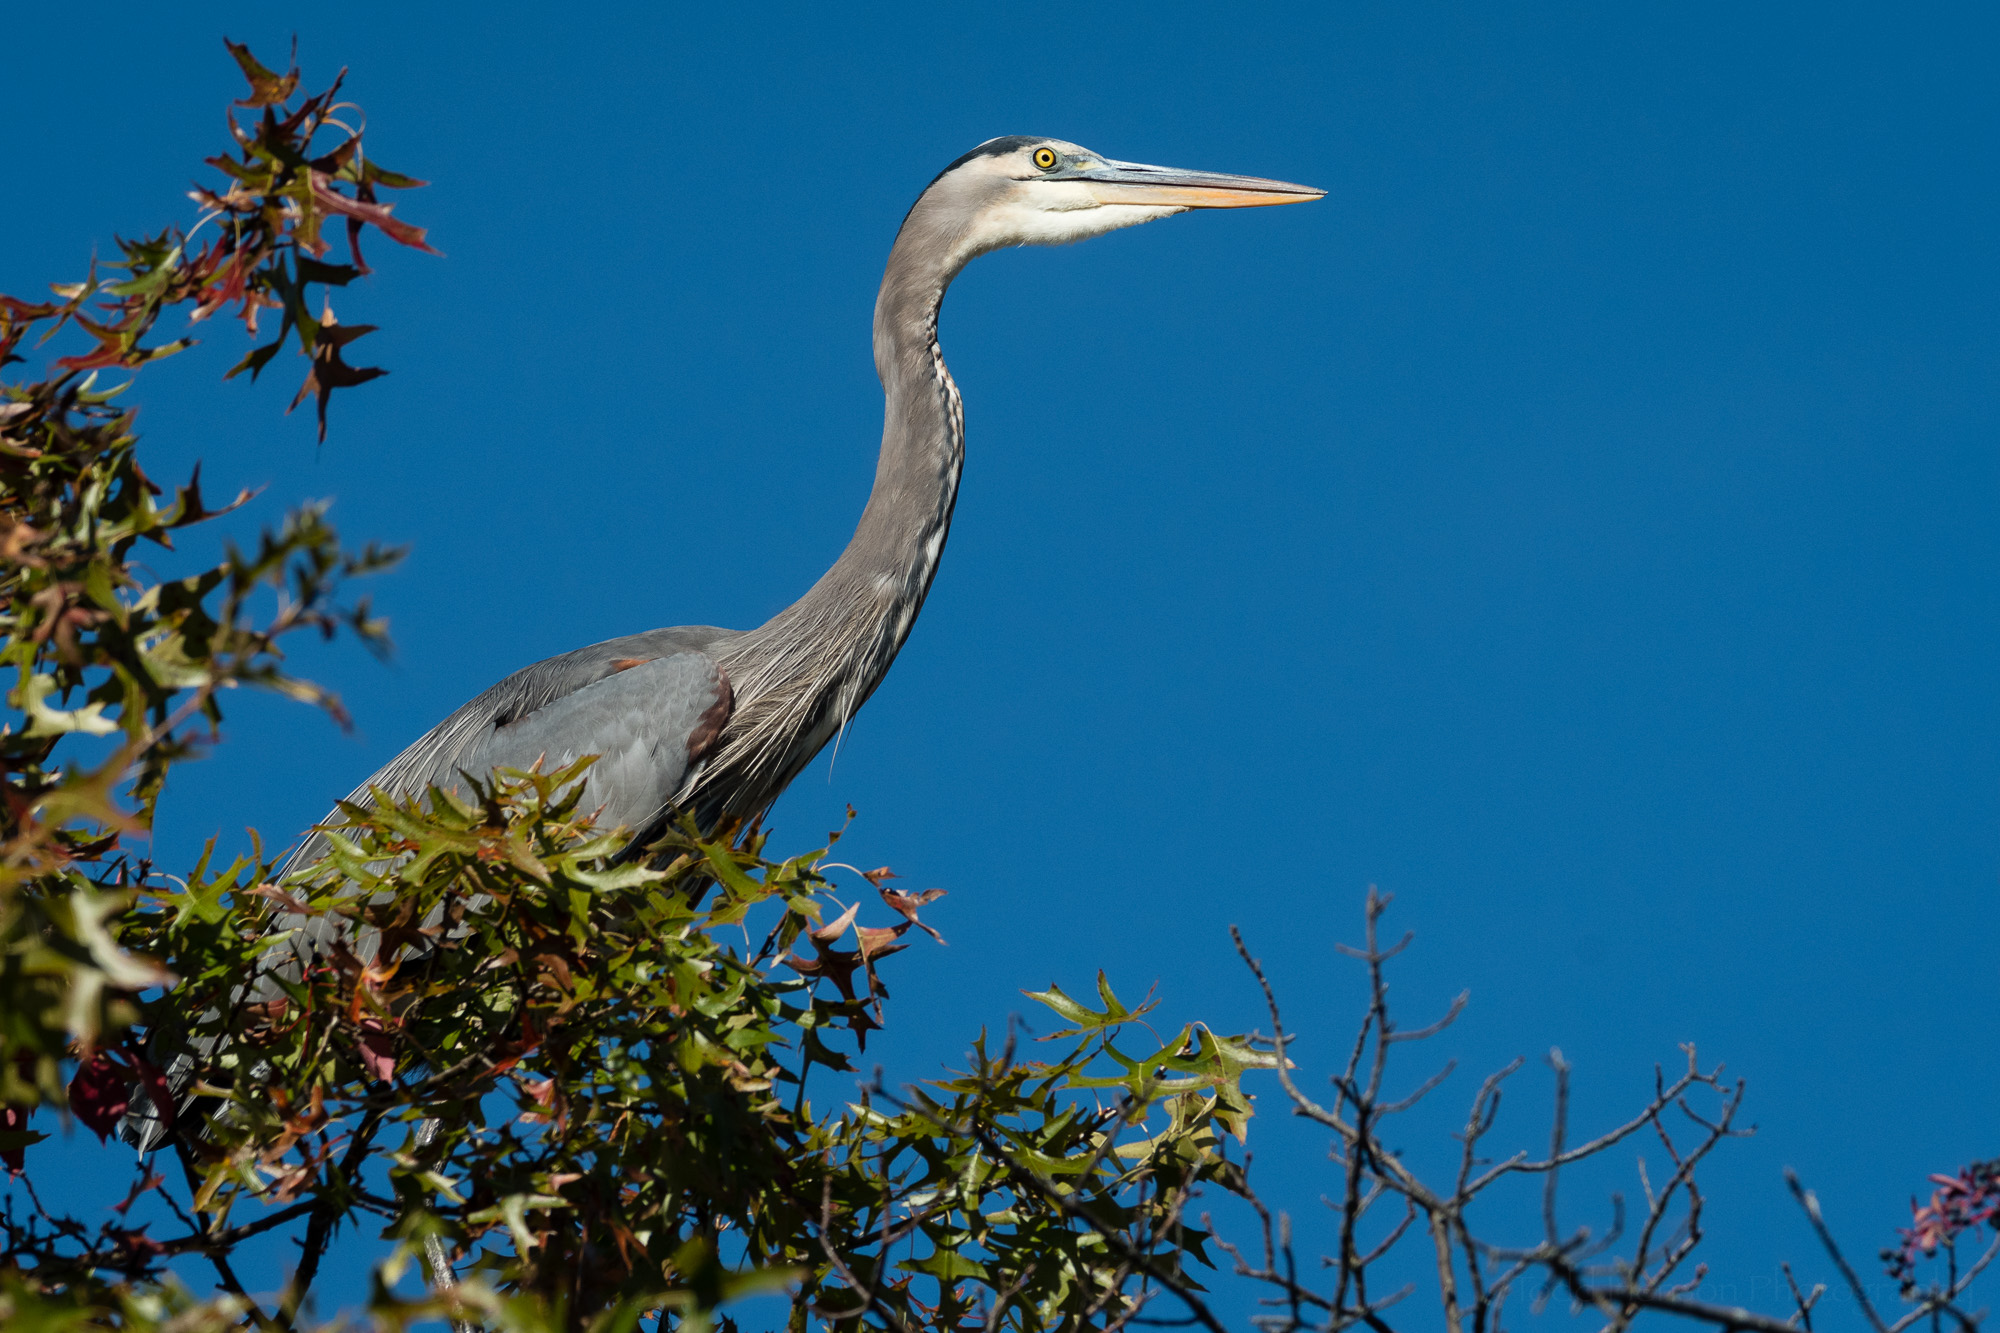 A Great Blue Heron landed in a tree right along the trail.